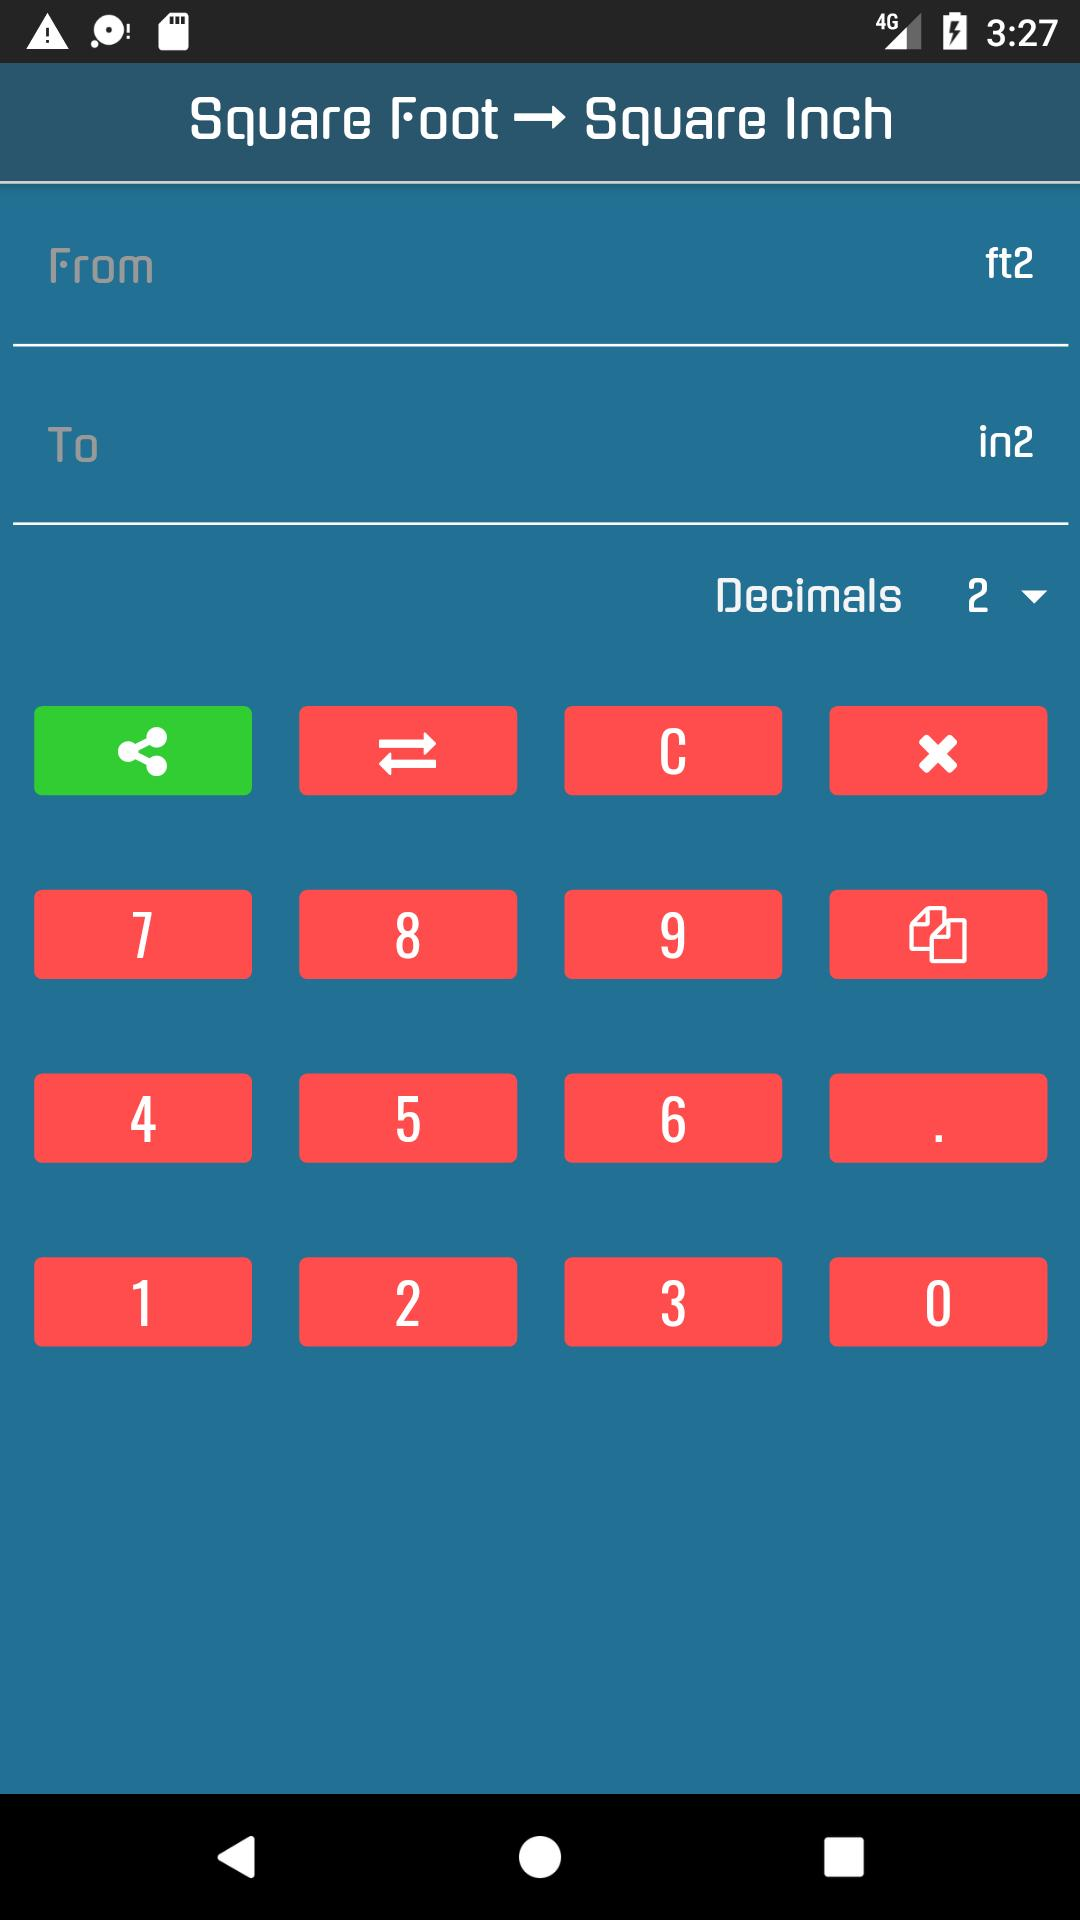 Square Feet to Square Inches Converter for Android - APK